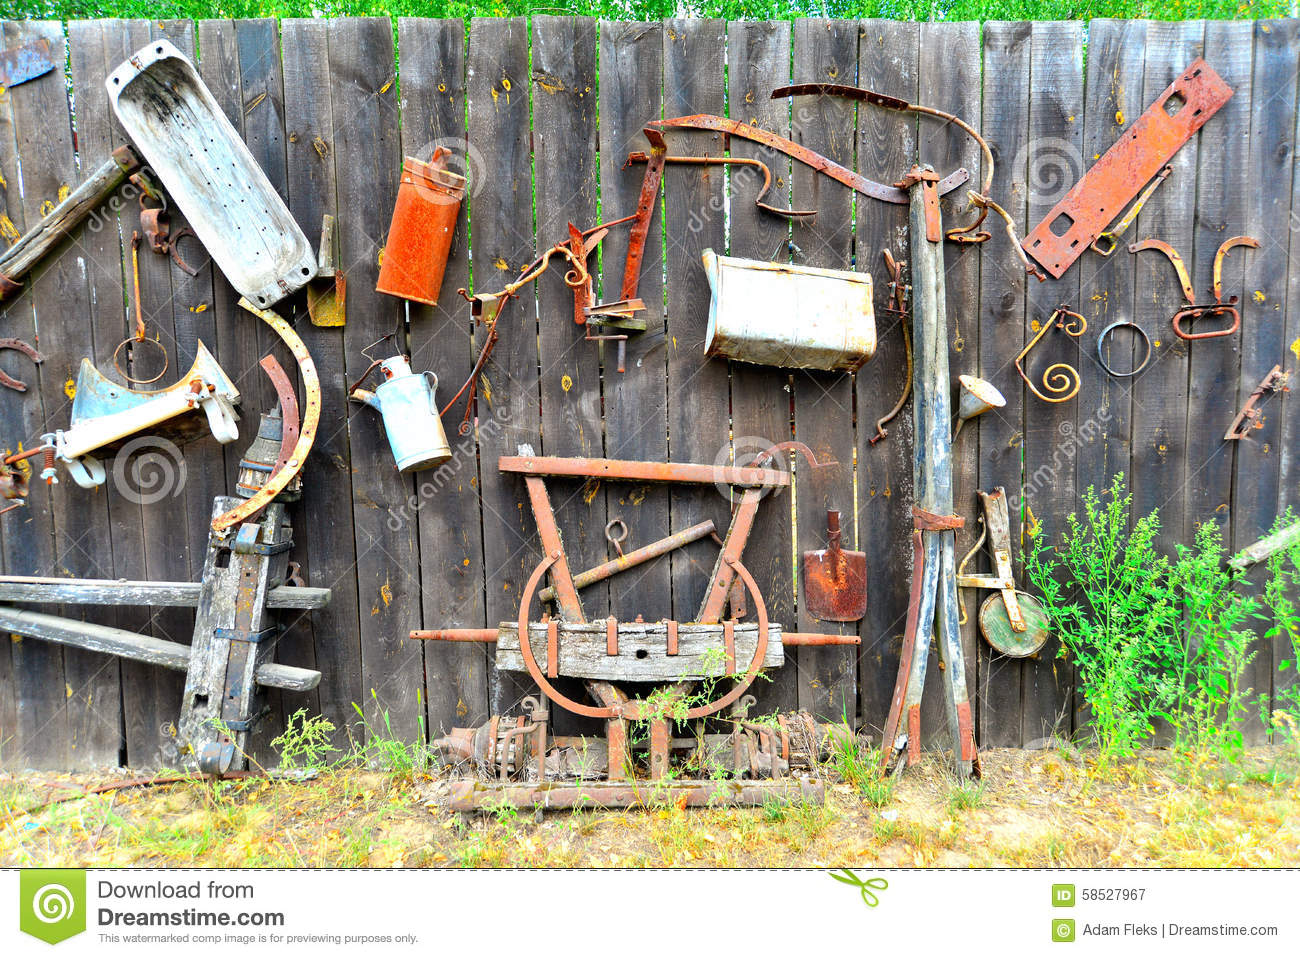 Old tools on a wooden fence